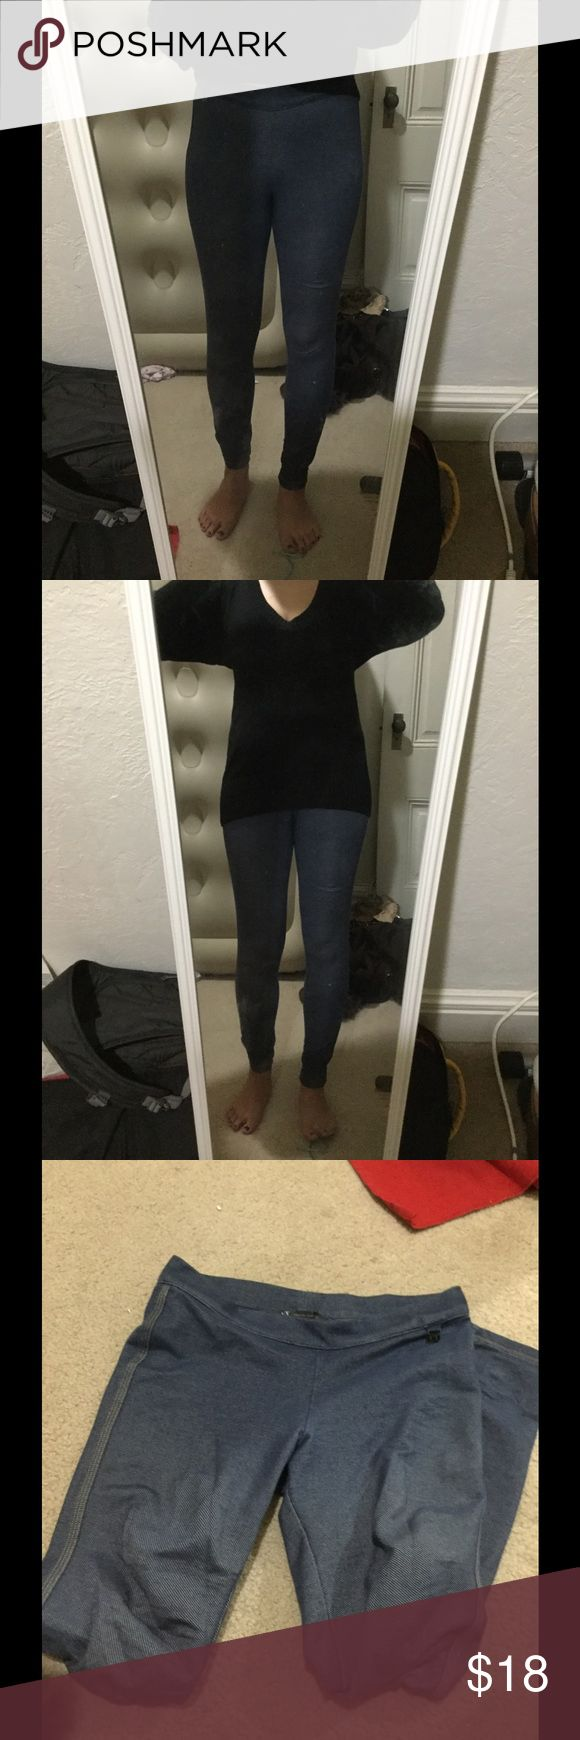 Armani Exchange leggings jeans Used many times, light color, has one hole under the knee Armani Exchange Pants Leggings